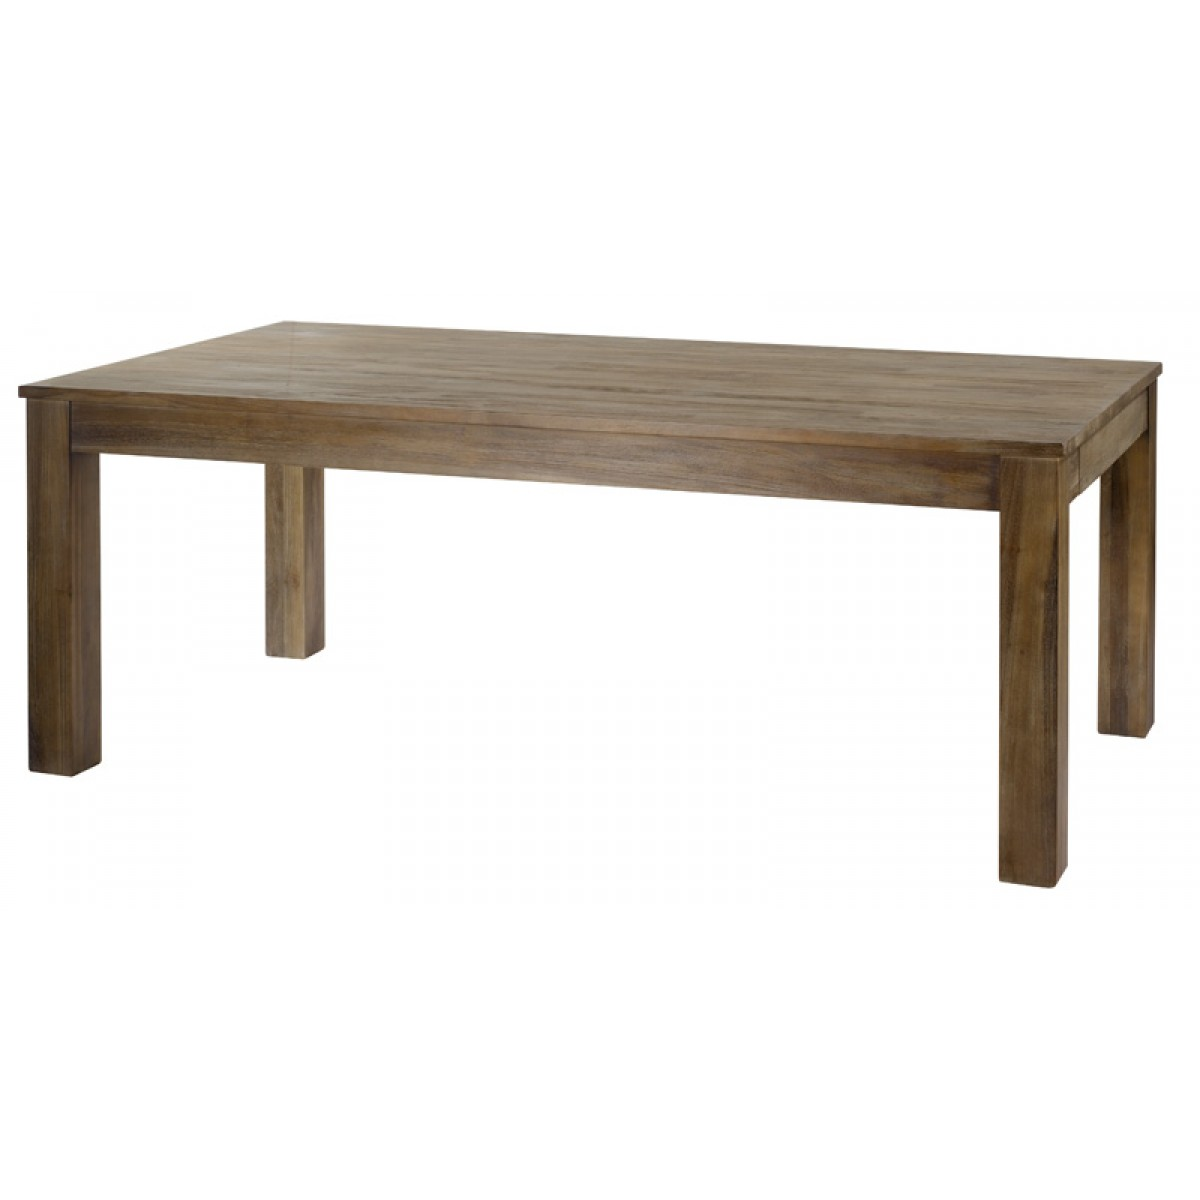 Table basse cosmos teck grise for Table basse 85 cm